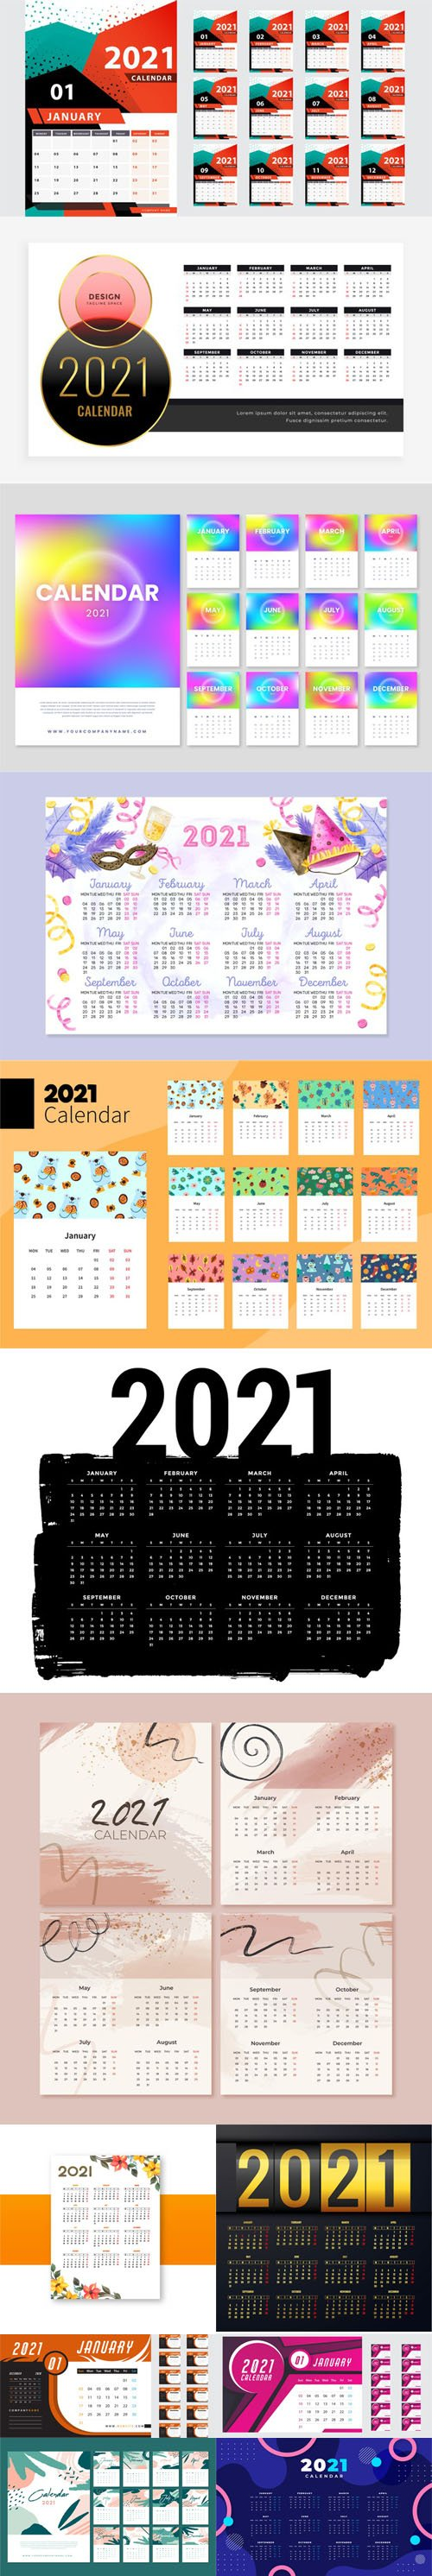 13 New Year 2021 Calendars Templates in Vector